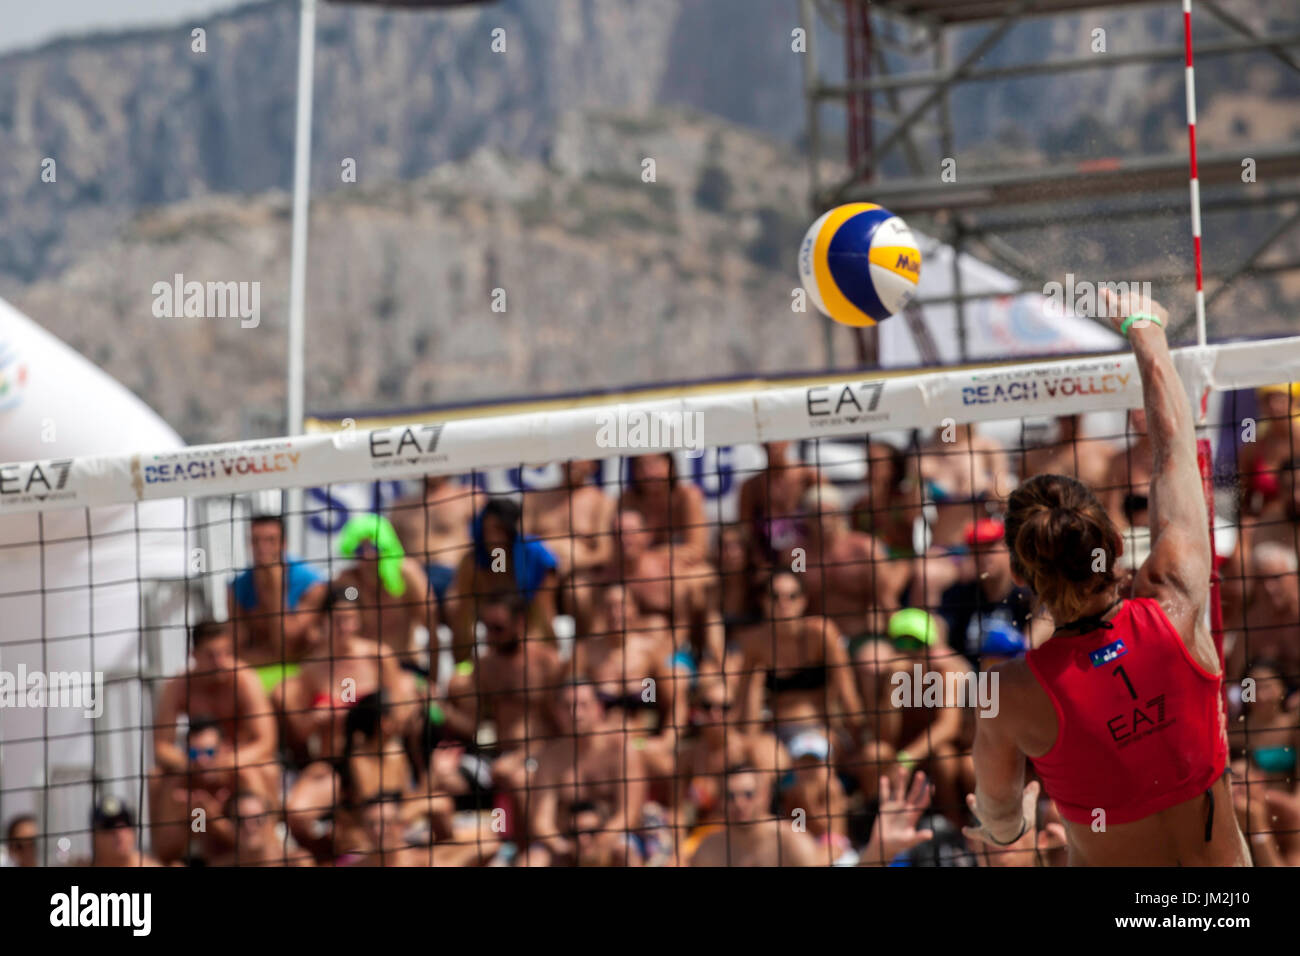 Athletes during the final of the Italian Championship Beach Volley on July 23, 2017 in Mondello Beach, Italy. Stock Photo